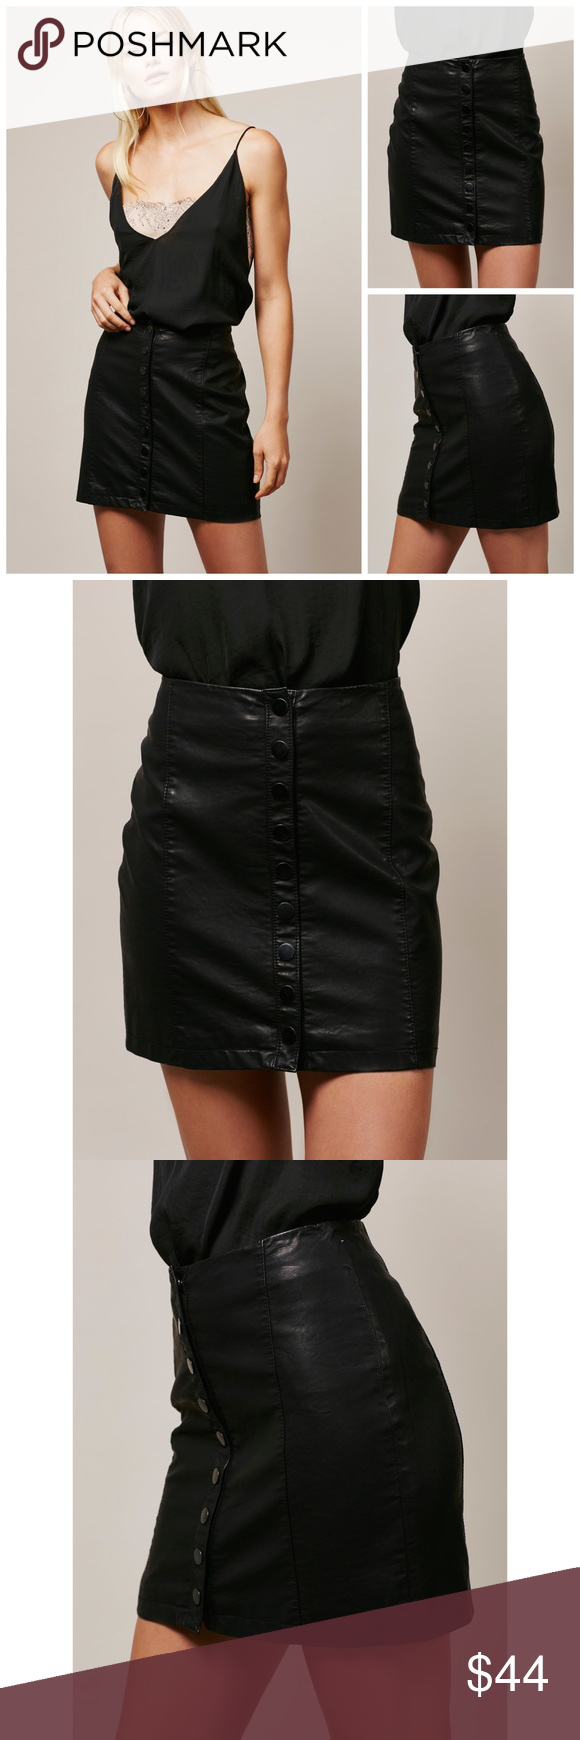 33379e974 Free People Oh Snap Vegan Leather Black Skirt Free People Oh Snap Vegan  Mini Skirt in Black $78 retail brand new without tag perfect condition  except for a ...